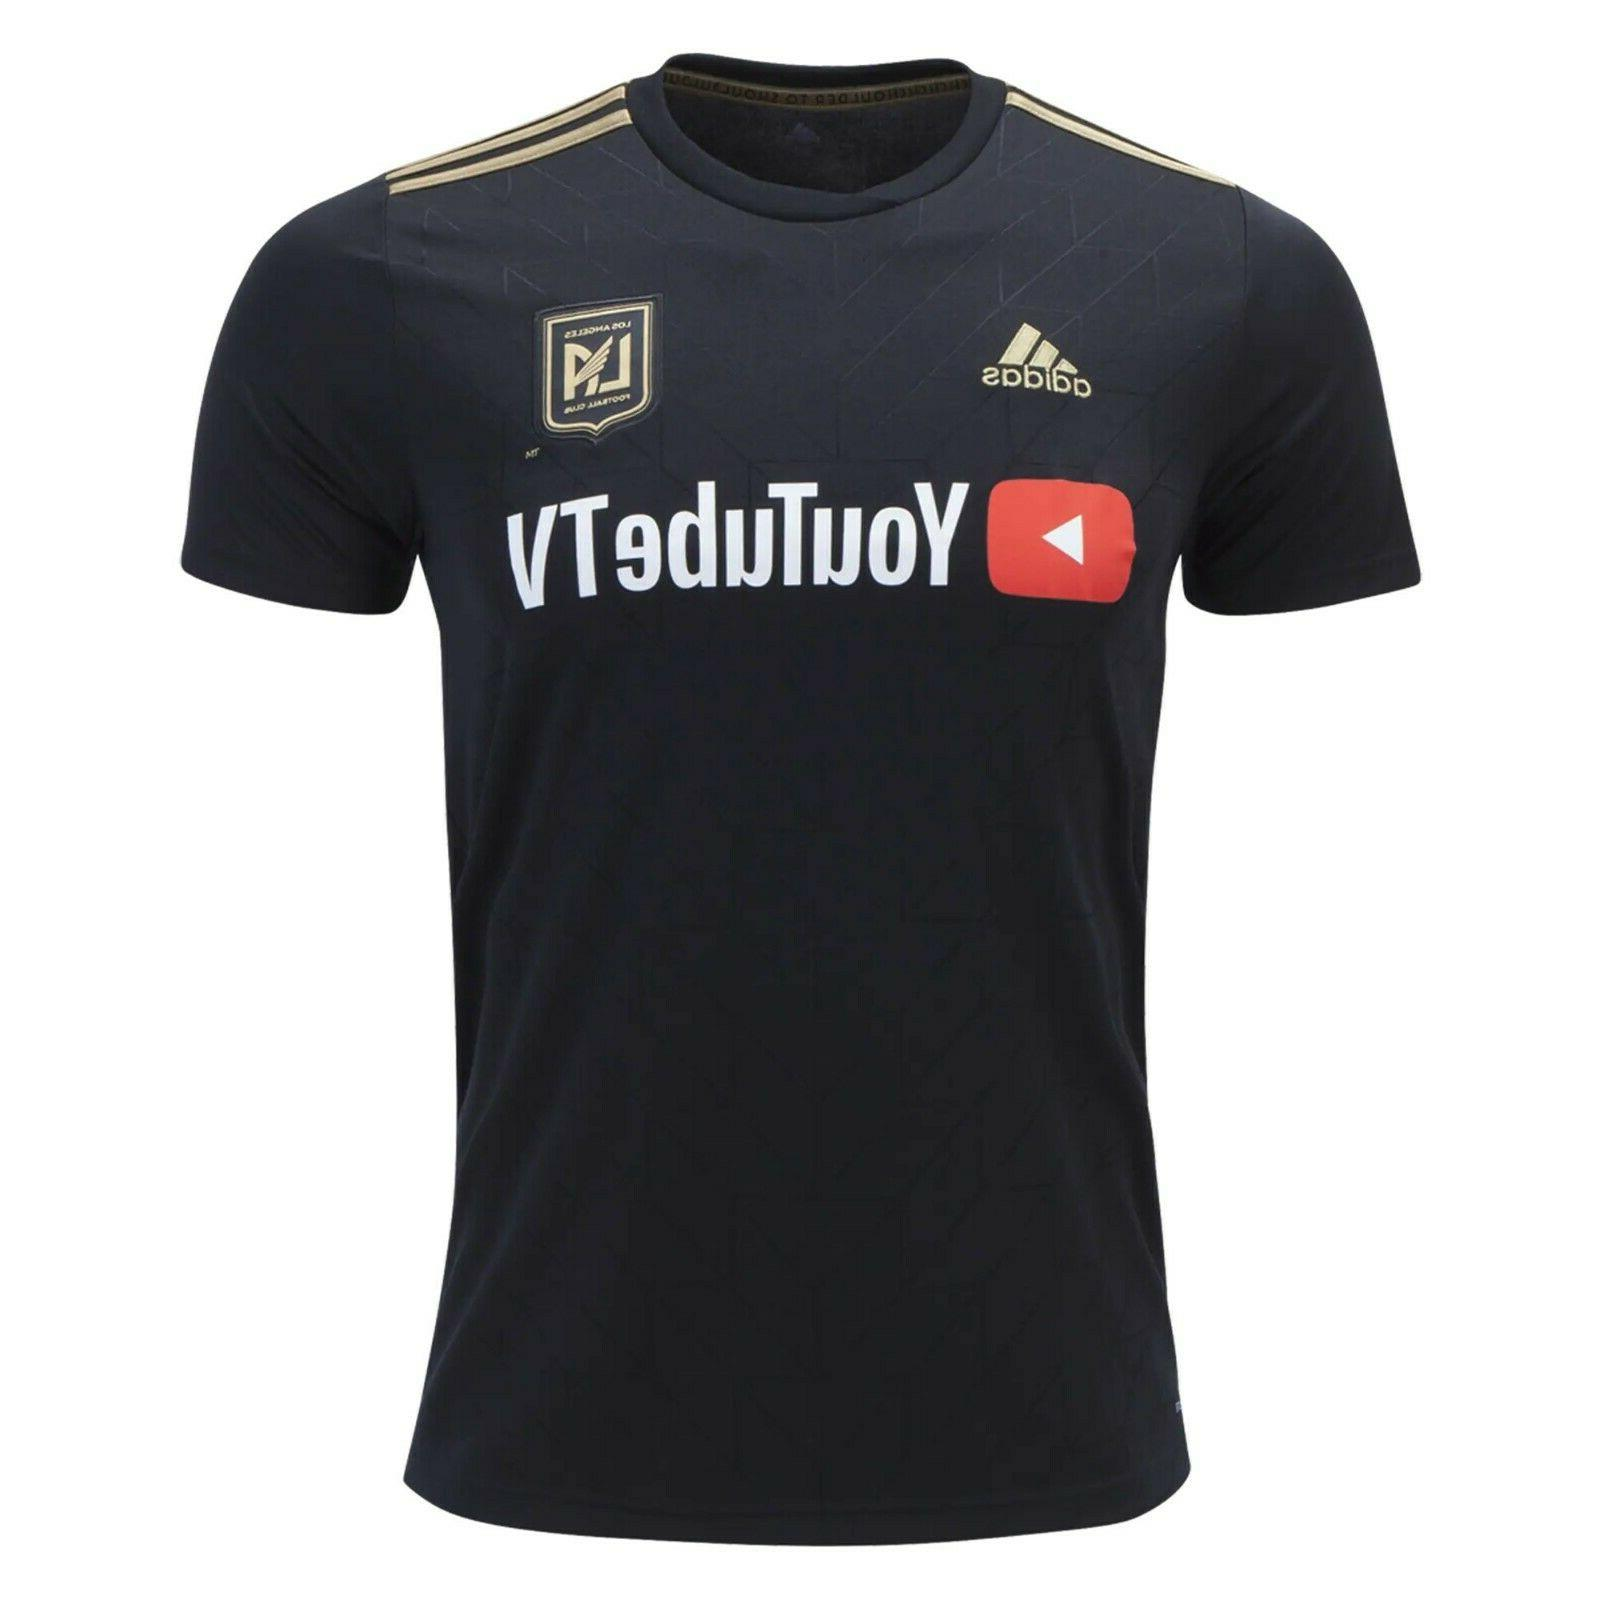 los angeles football club lafc official 2019